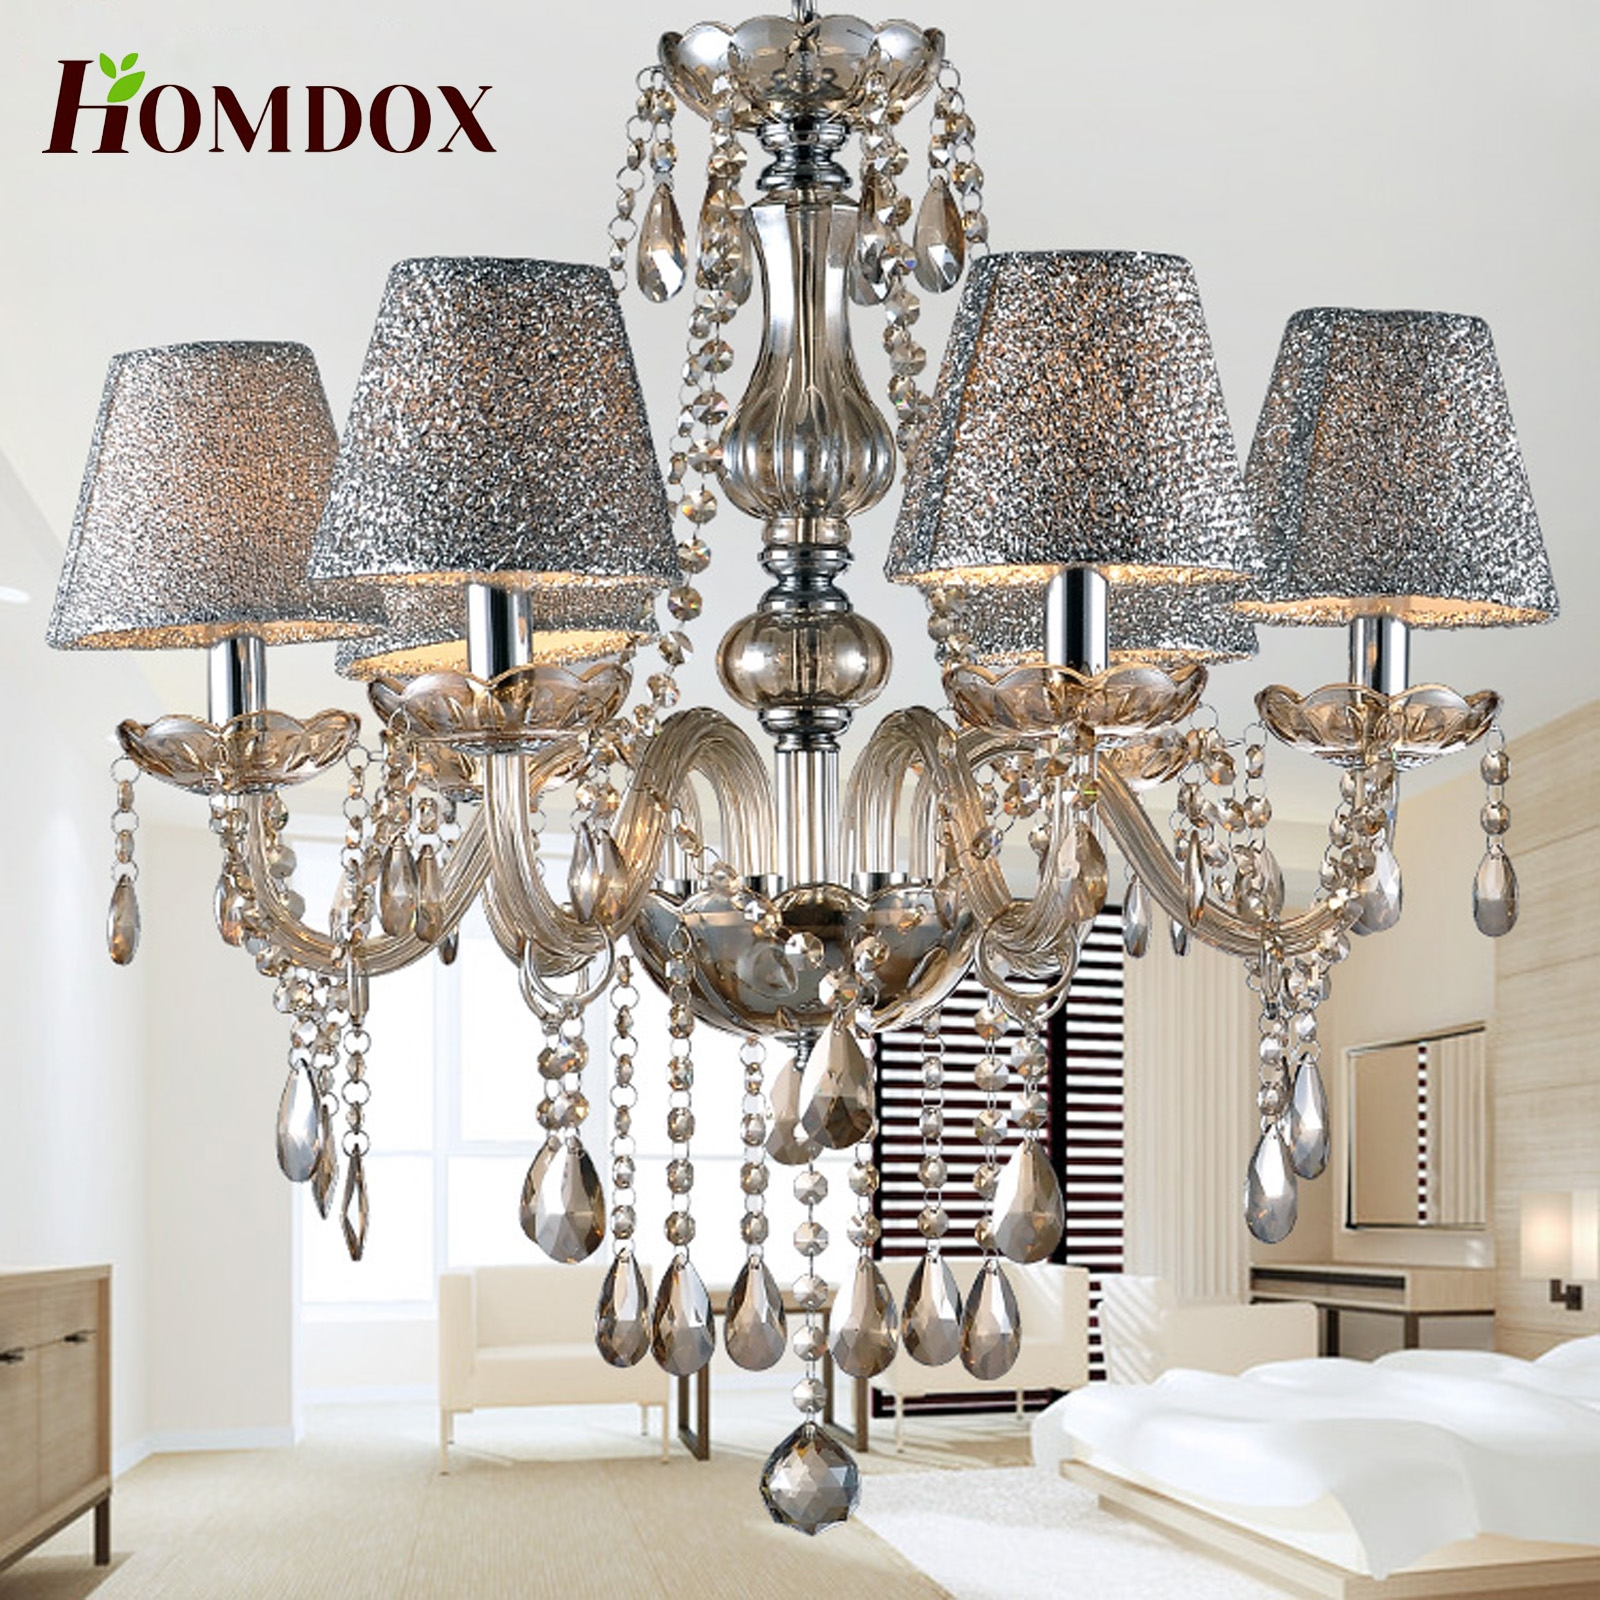 Homdox Crystal Lamp 6 Lights Ceiling Chain Lamp Chandelier by